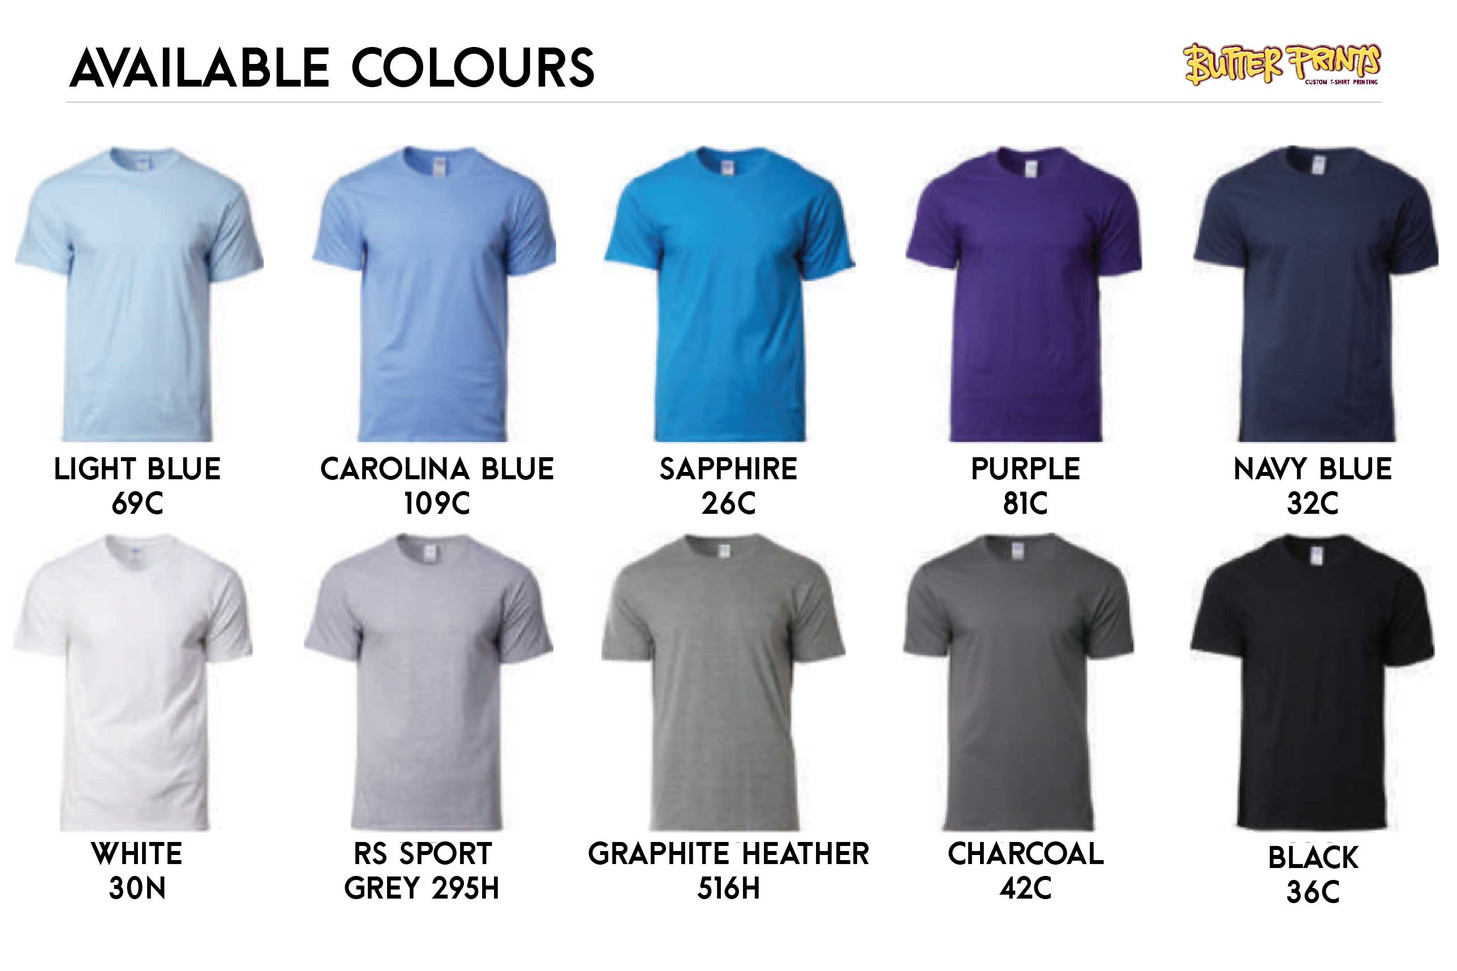 Gildan Softstyle 63000 Cotton T-shirts Color Chart 2